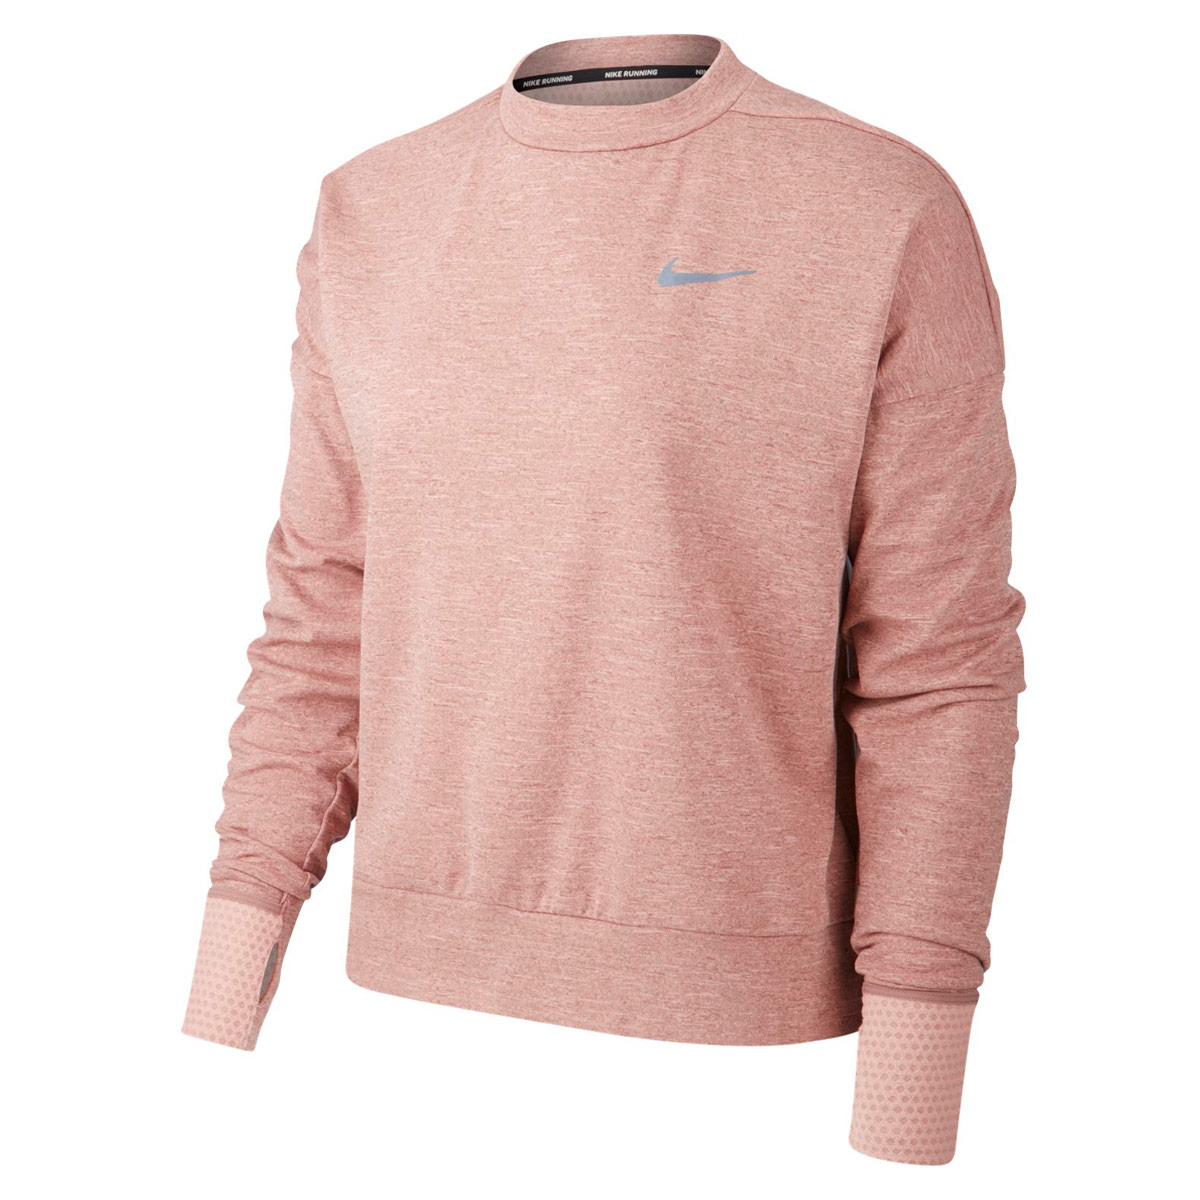 a58a4e66d320 Nike Therma Sphere Element Top Crew 2.0 - Sweatshirts   Hoodies for Women -  Pink